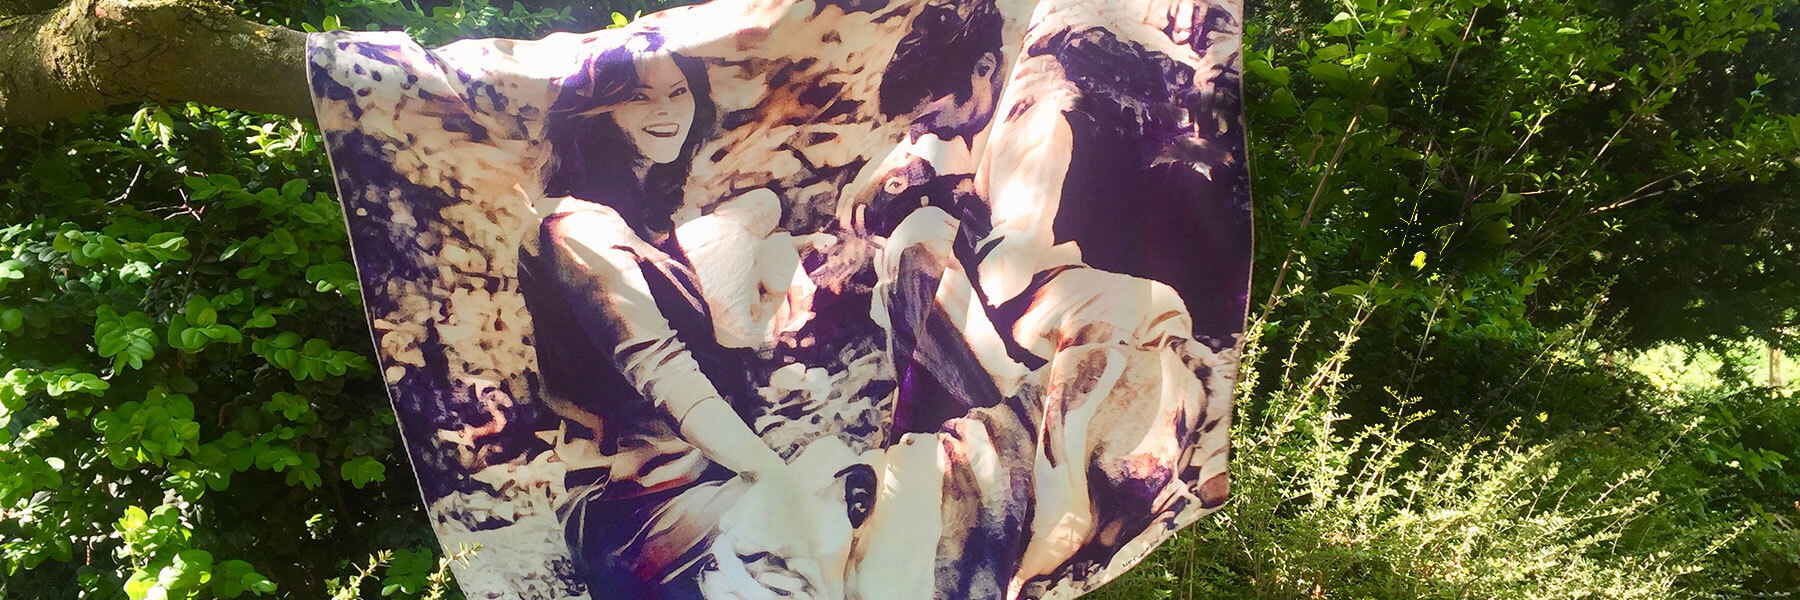 printed silk scarf of family with babies and dog